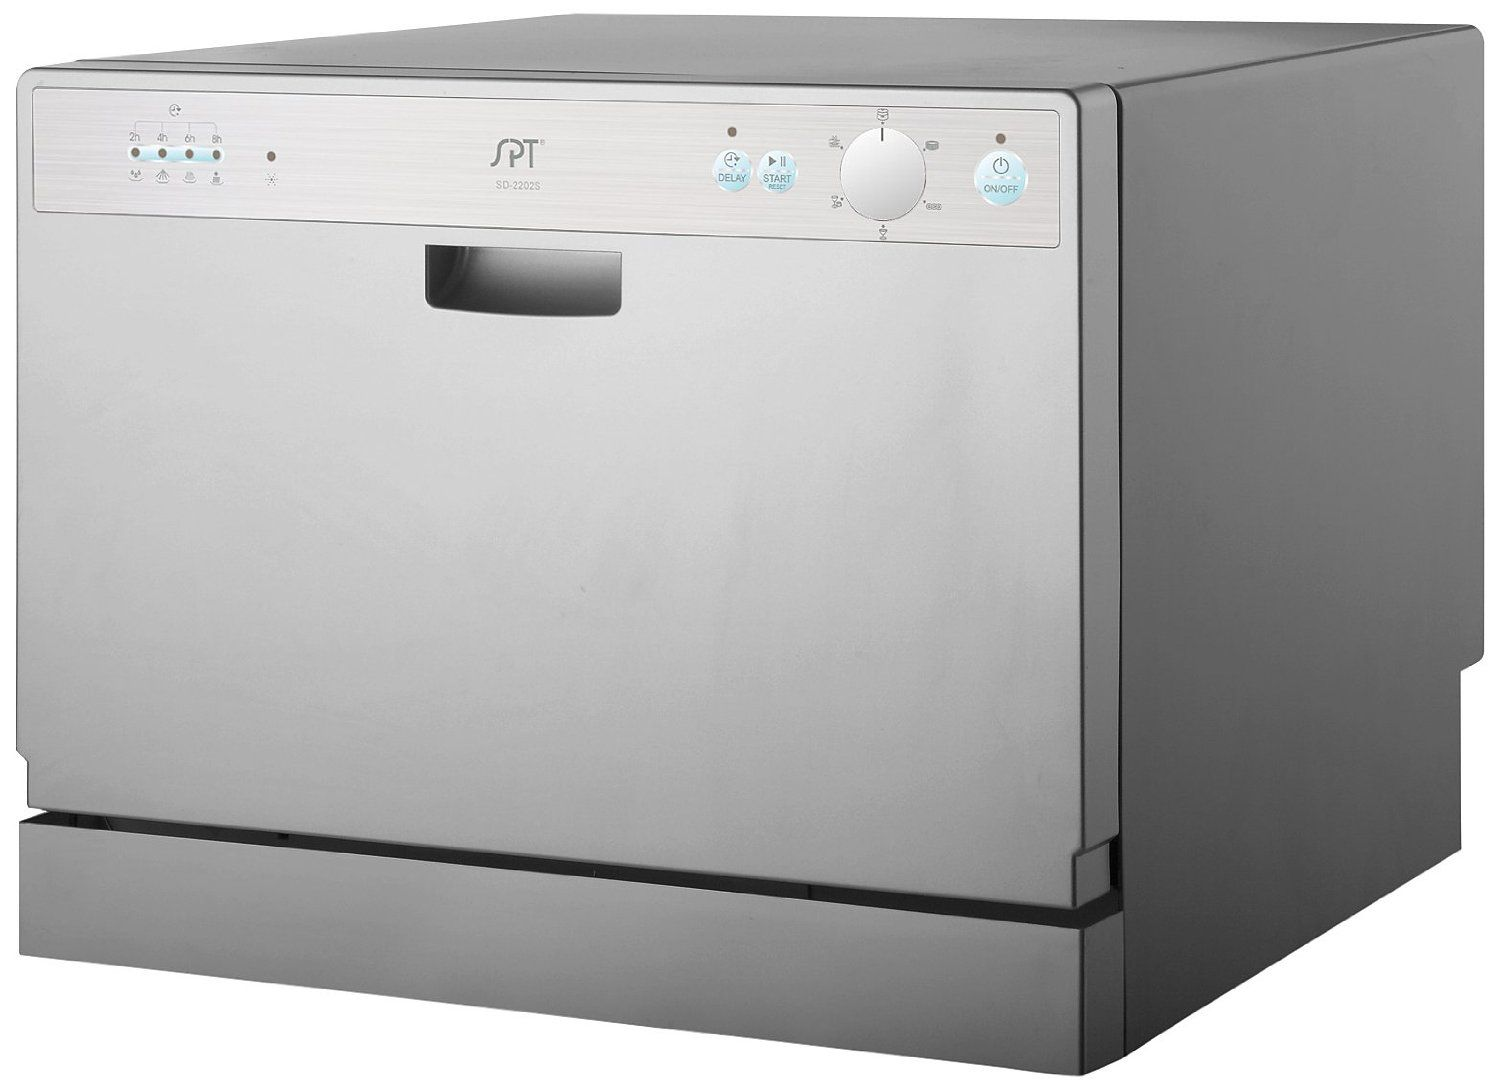 Little Big Life The Compact Countertop Dishwasher Is Just Made For Tiny Houses Read More Countertops Dishwasher